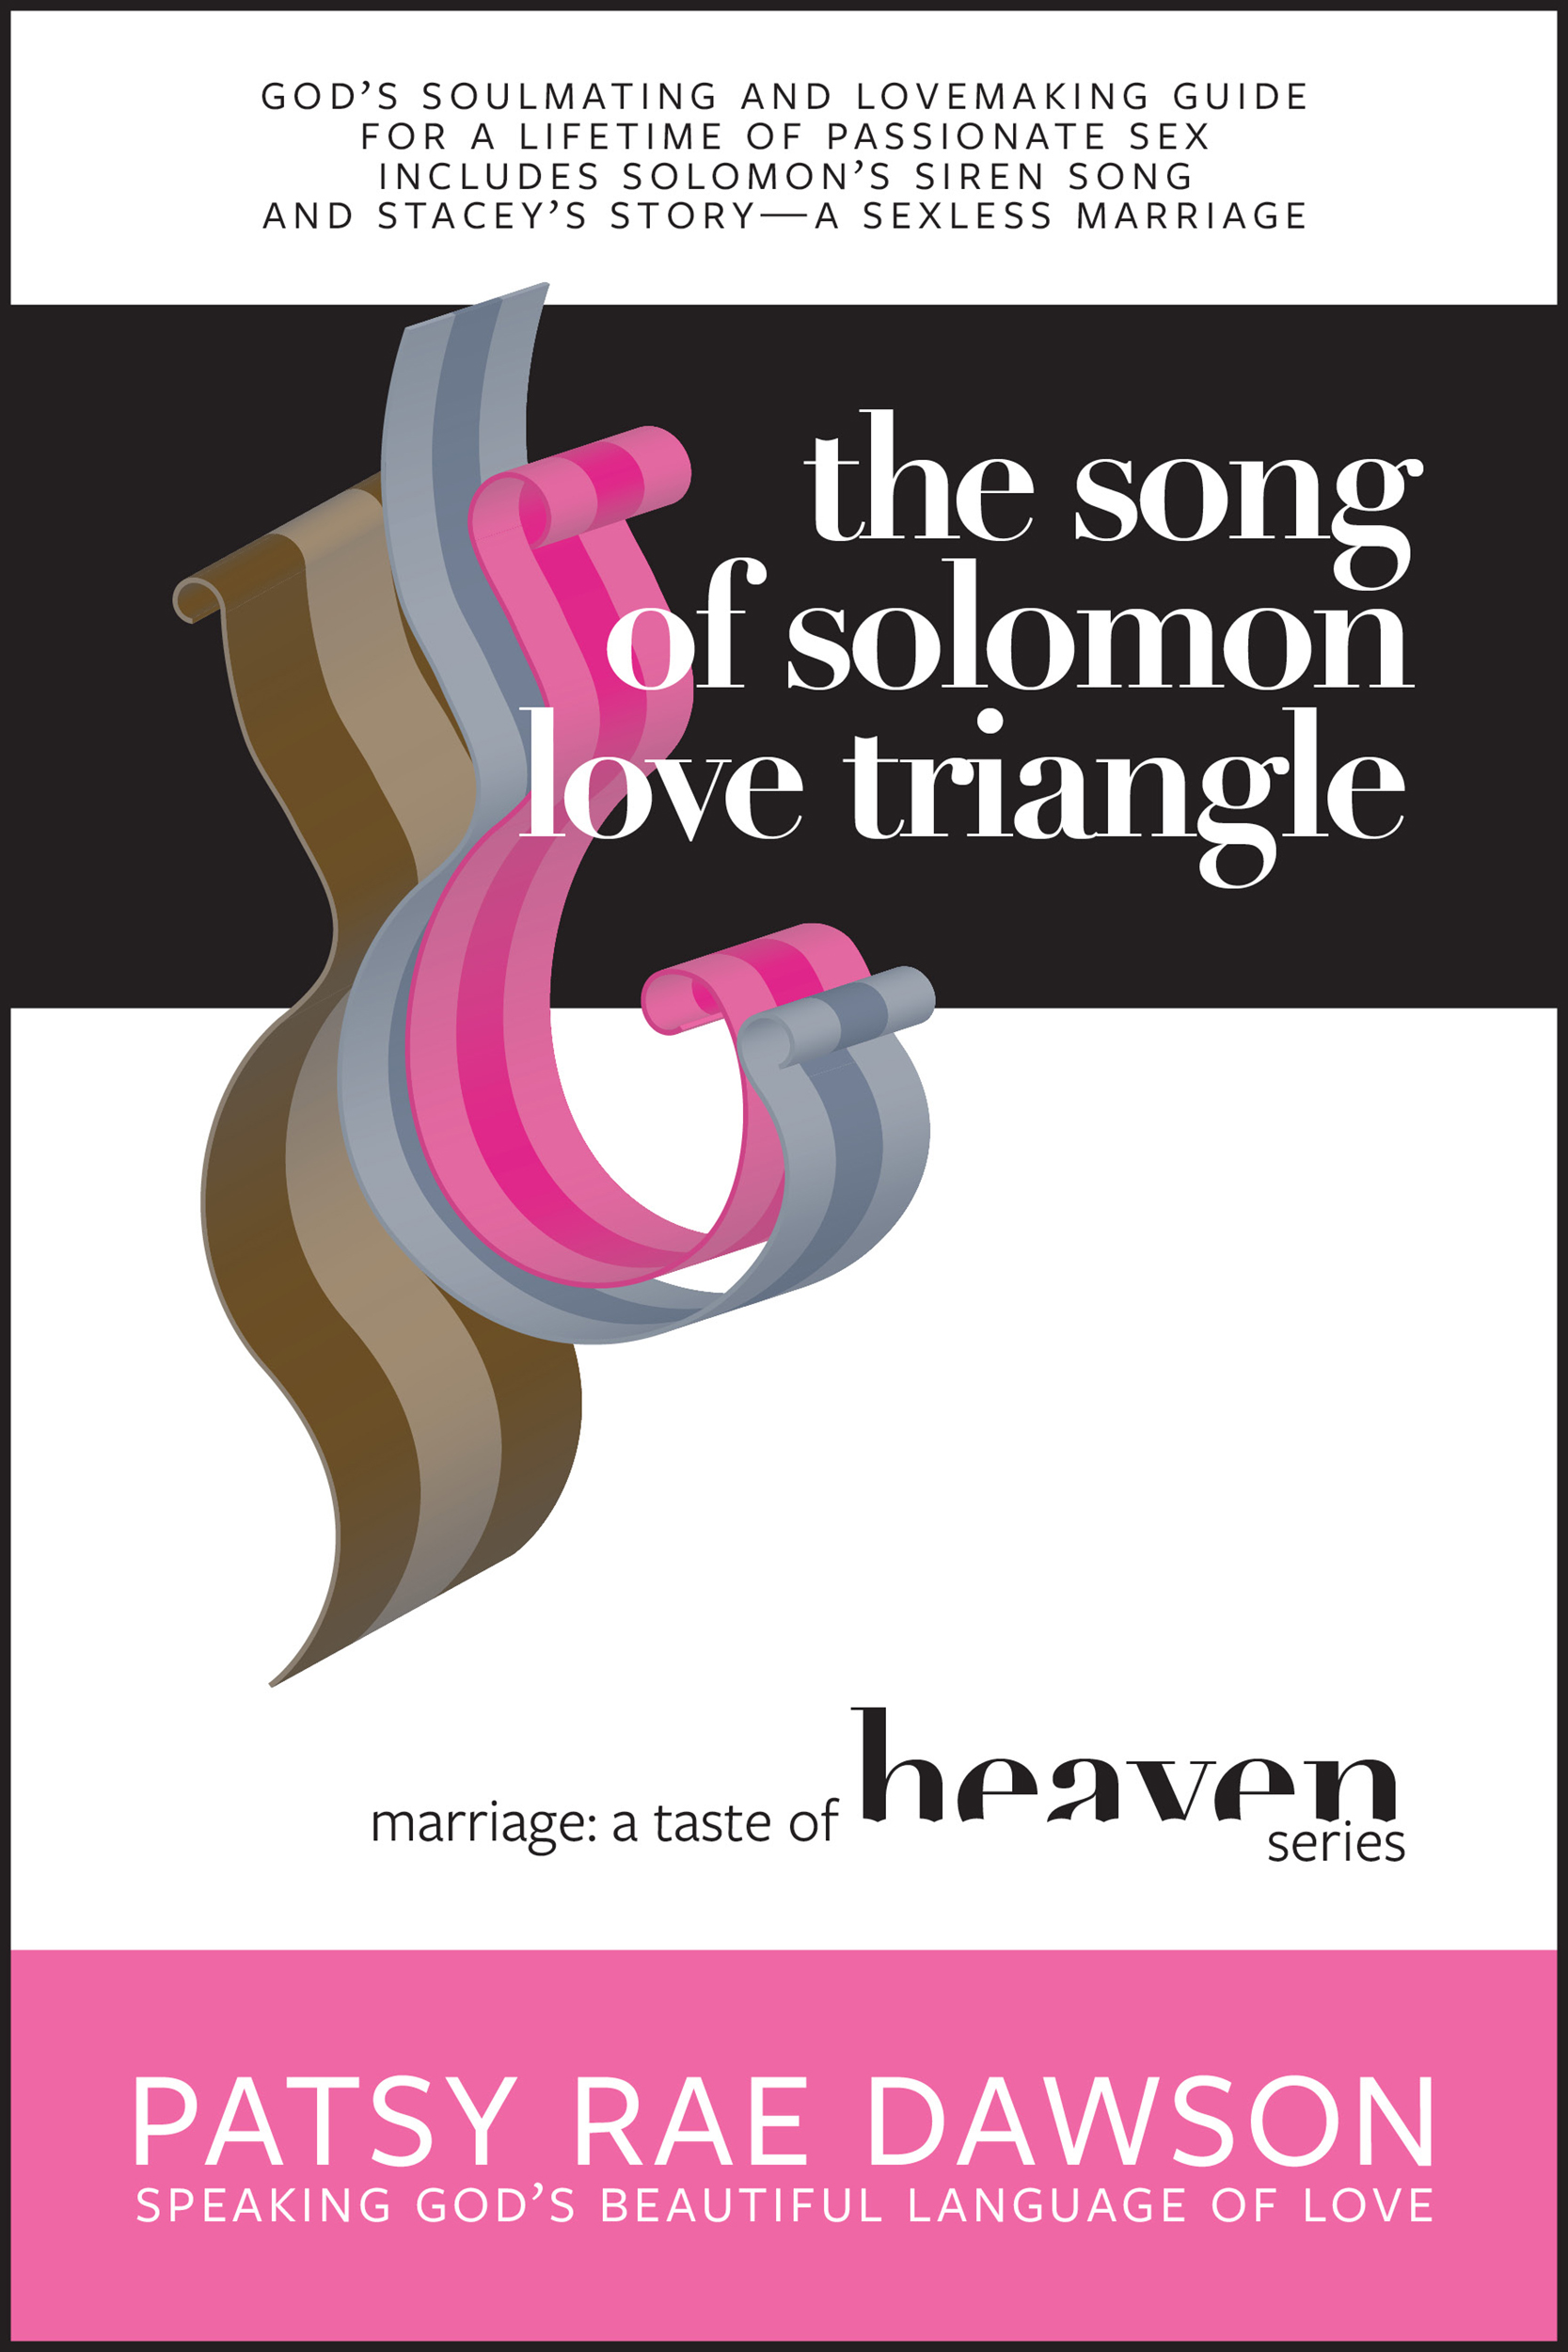 Song of solomon on sex consider, that